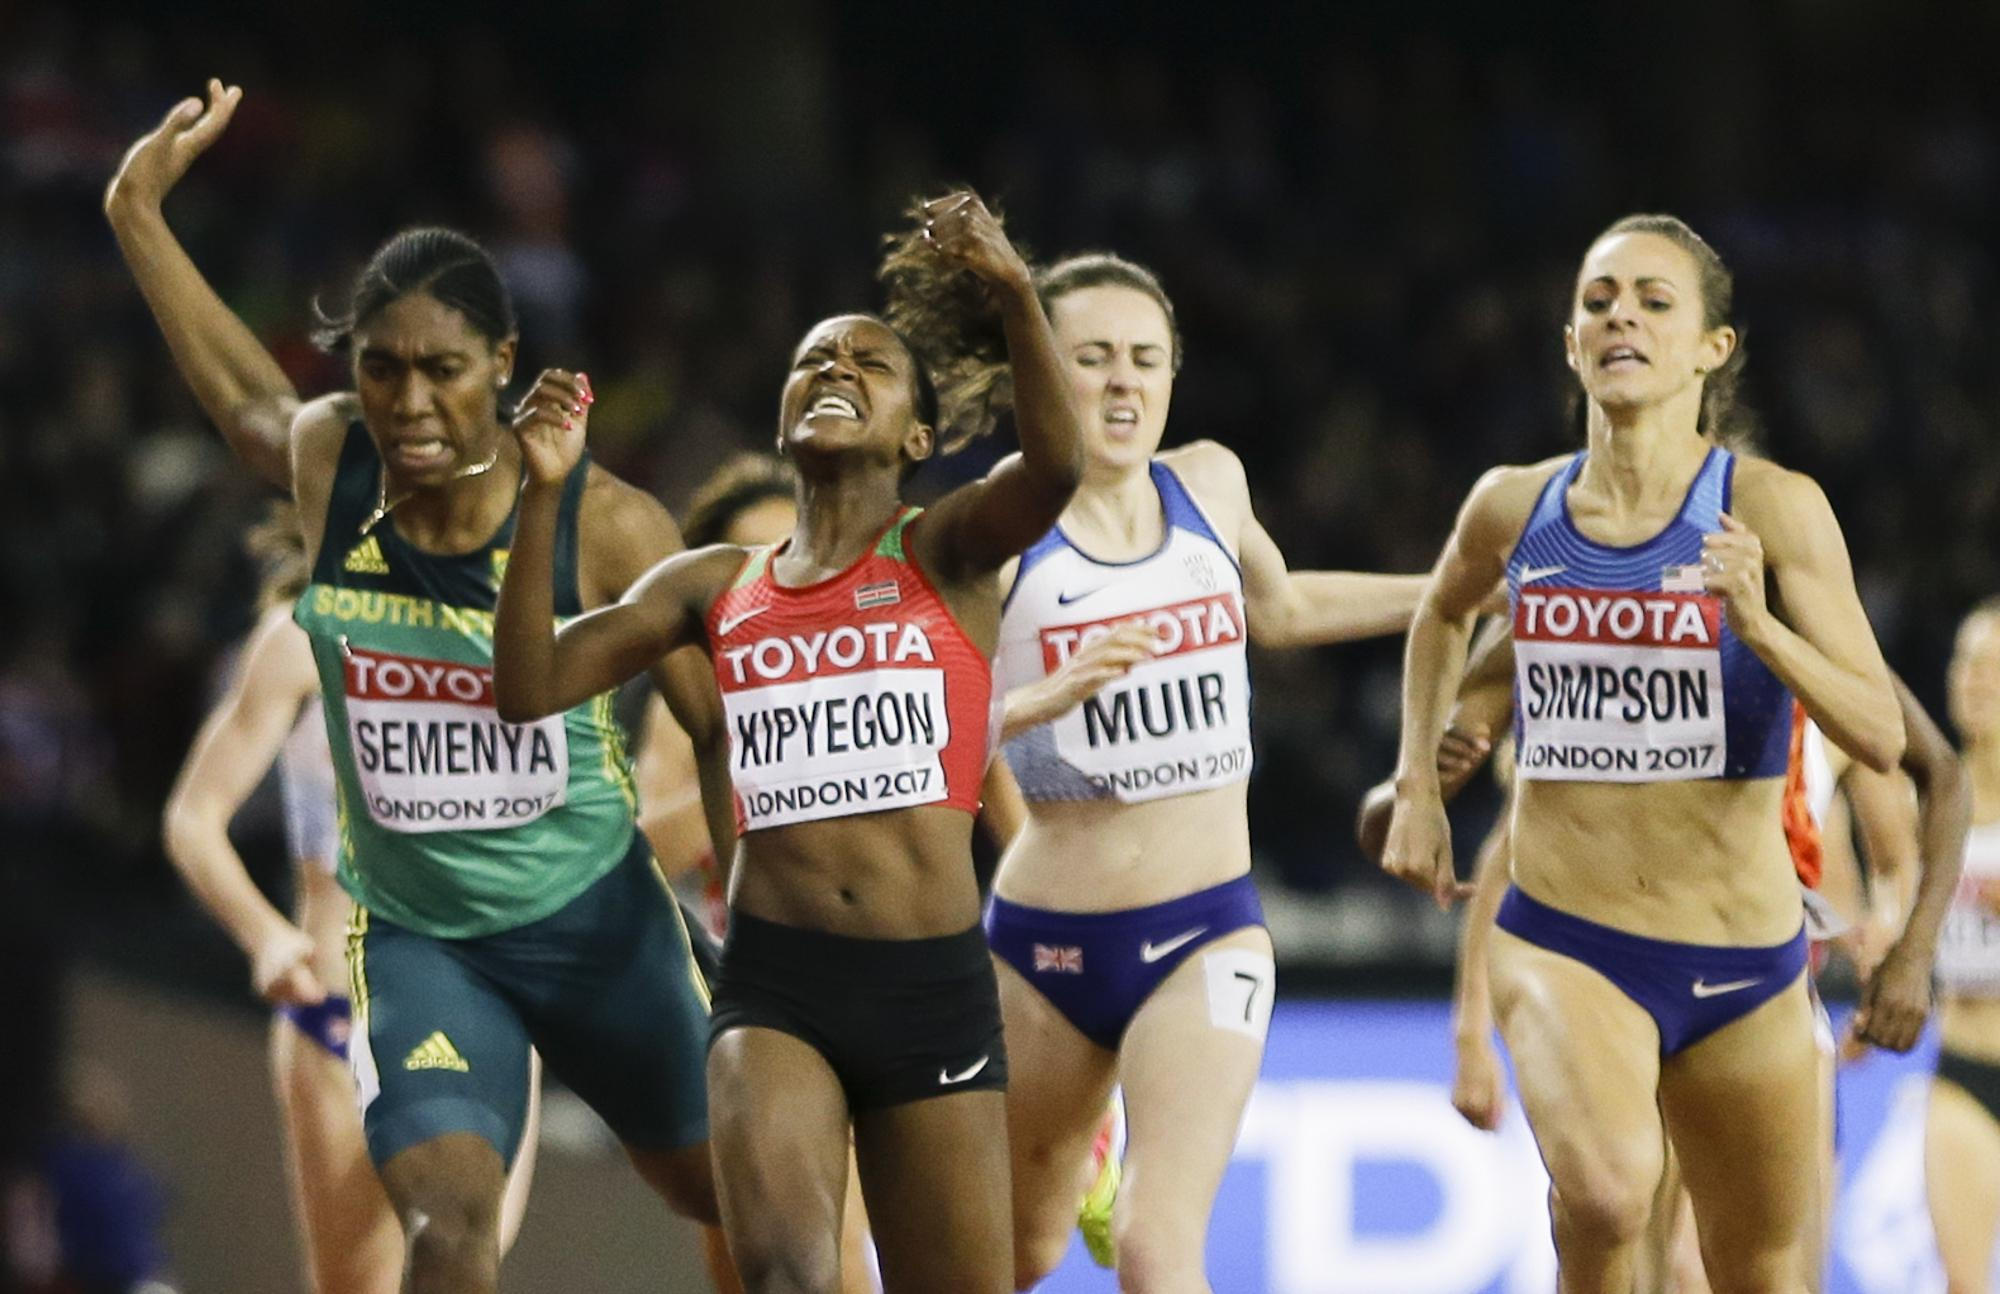 Laura Muir is just run out of a world 1500m medal in the last few strides